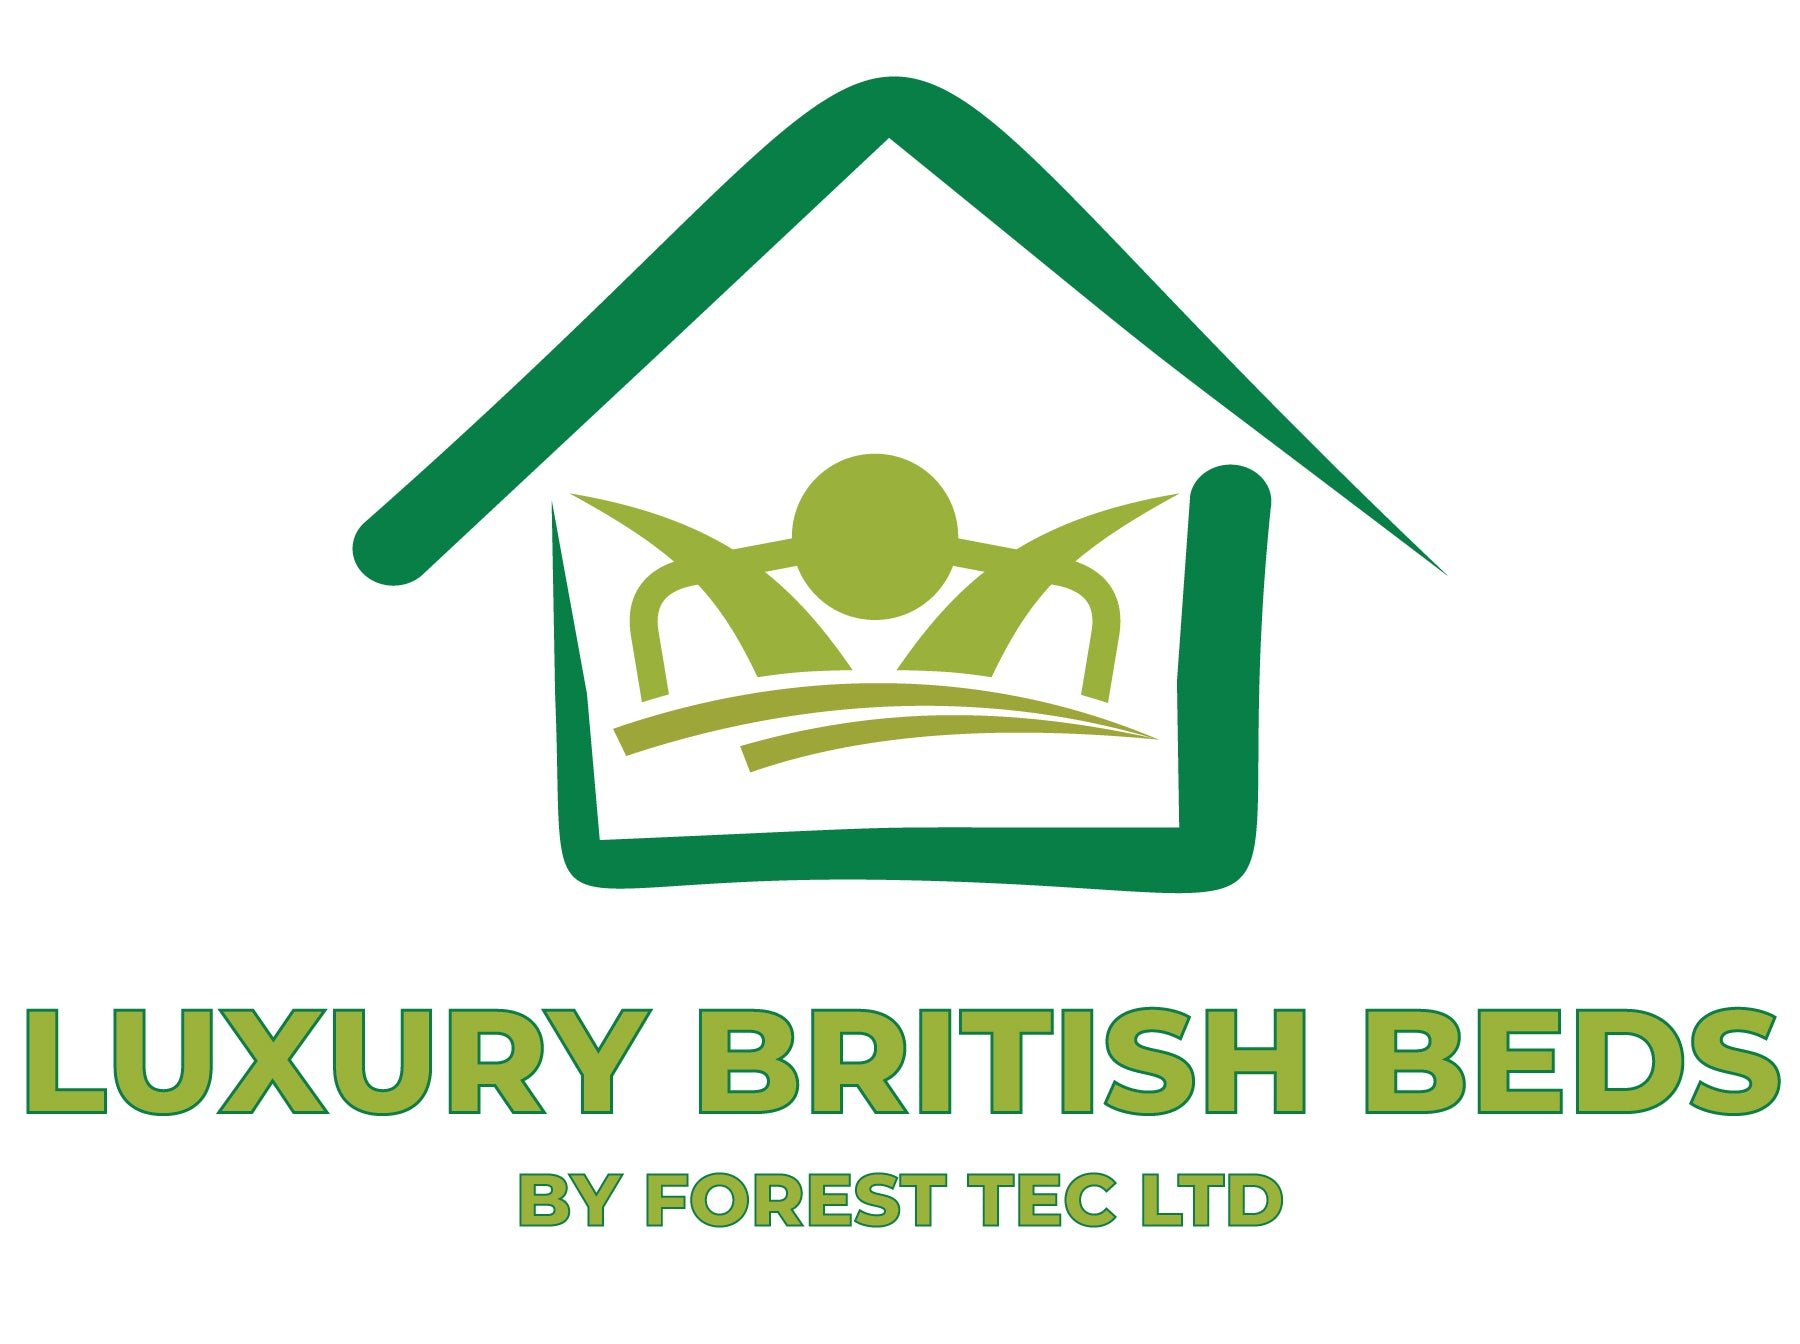 Luxury British Beds